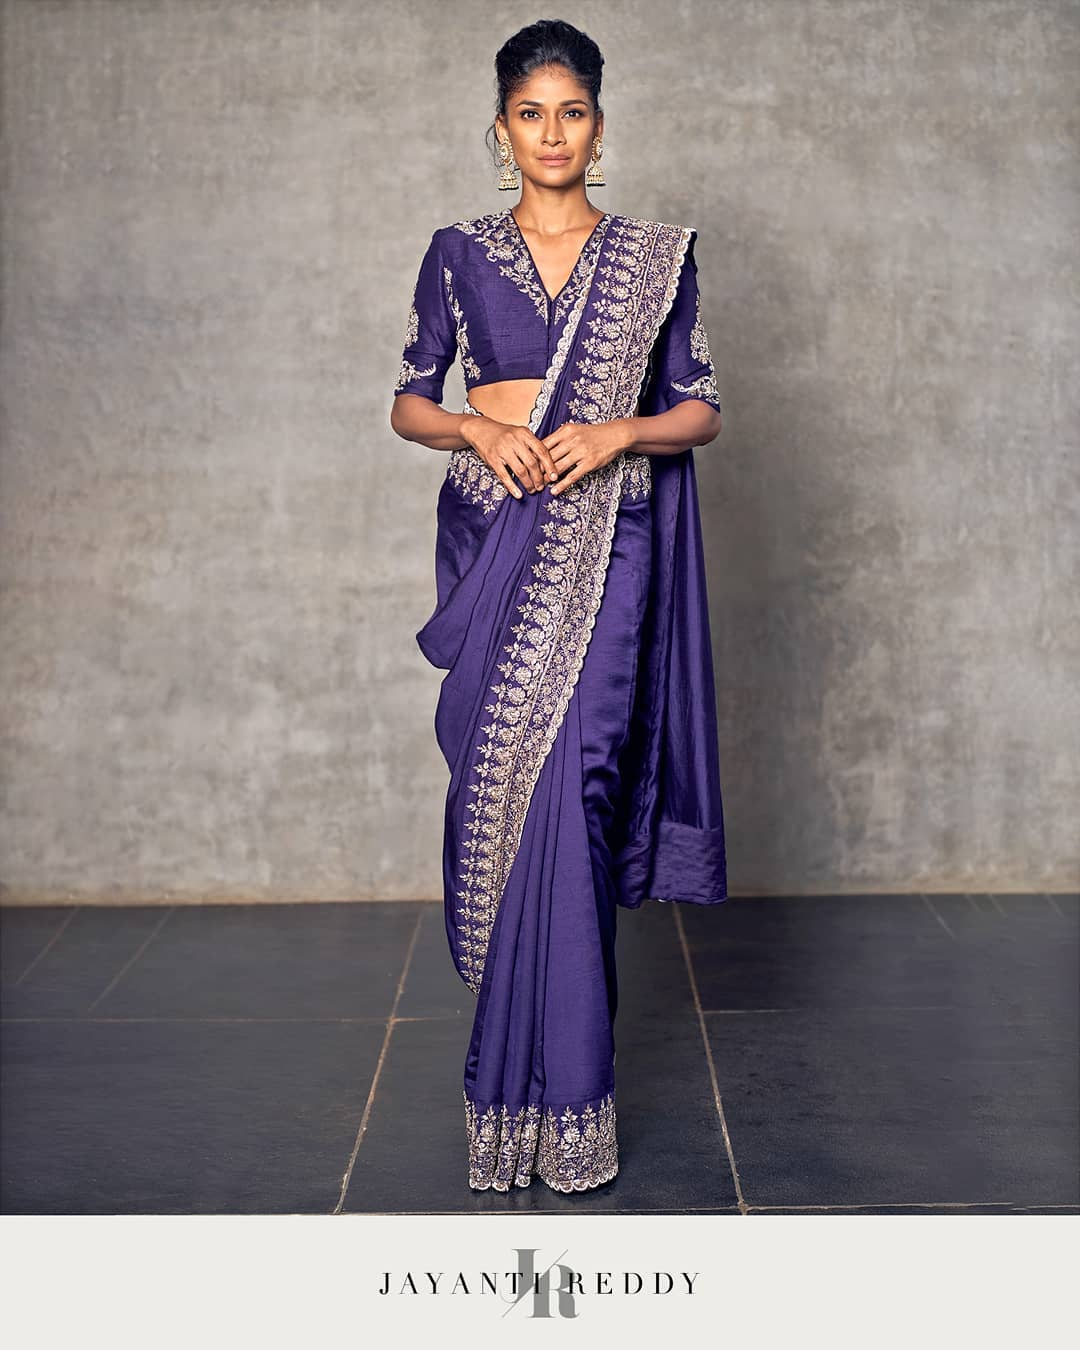 Inheriting a distinct aesthetic from the rich craft of Banaras weaves & giving it Jayanti Reddy own unique spin.  Whatsapp  for more details. Hyderabad +91 9121432255 (Neelu) Delhi +91 83739 92273 (Shalini) | buy designer sarees online | designer blouse design | indian wedding saree | 2020-12-15